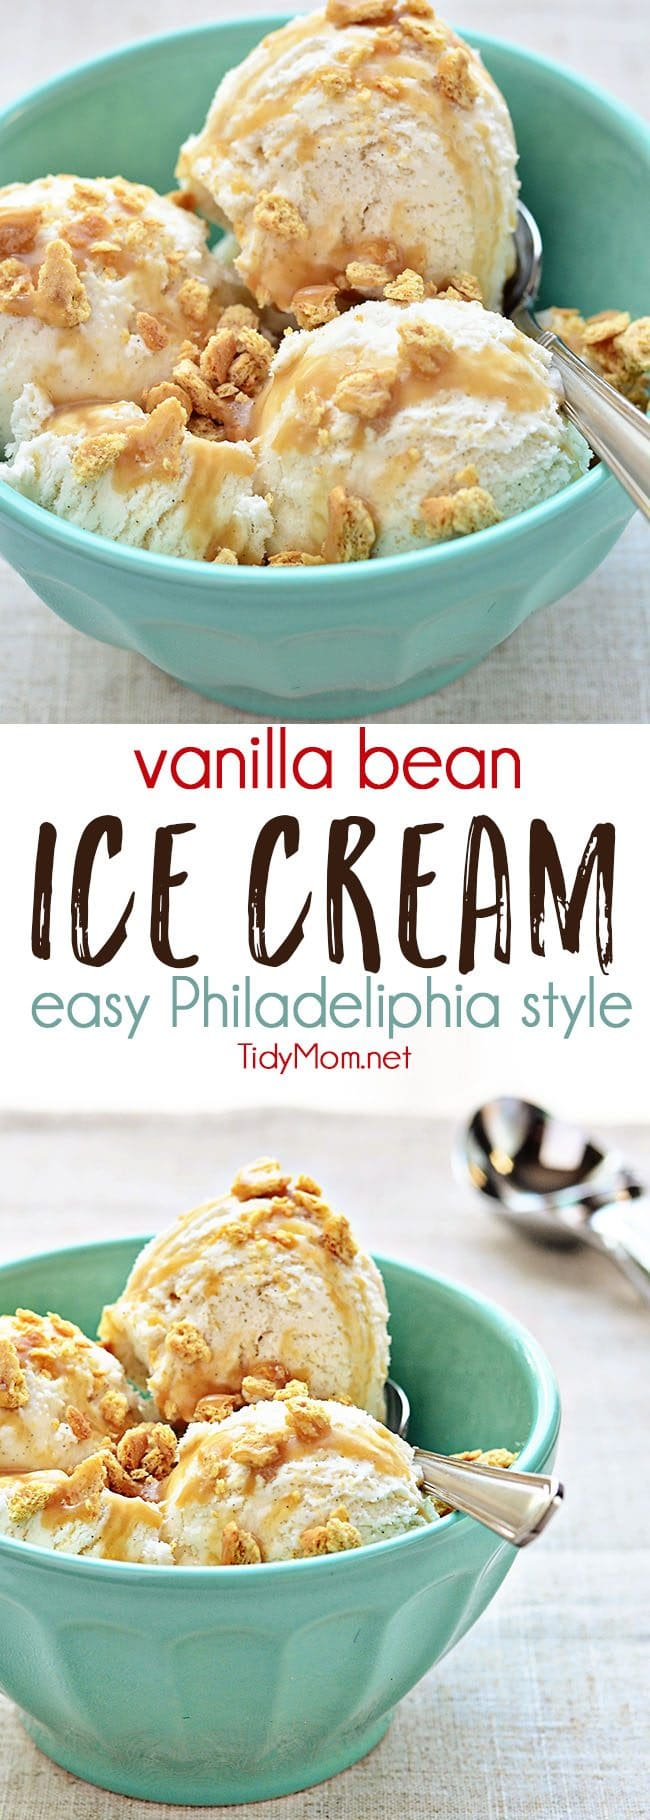 Vanilla Bean Ice Cream Recipe - Everyone should have a truly-easy and delicious no-cook vanilla ice cream recipe in their arsenal. Philadelphia style ice creams are quicker to make, don't involve any cooking, and have a heavy cream/milk mixture for the base. Print the full recipe for HOMEMADE VANILLA BEAN ICE CREAM at TidyMom.net